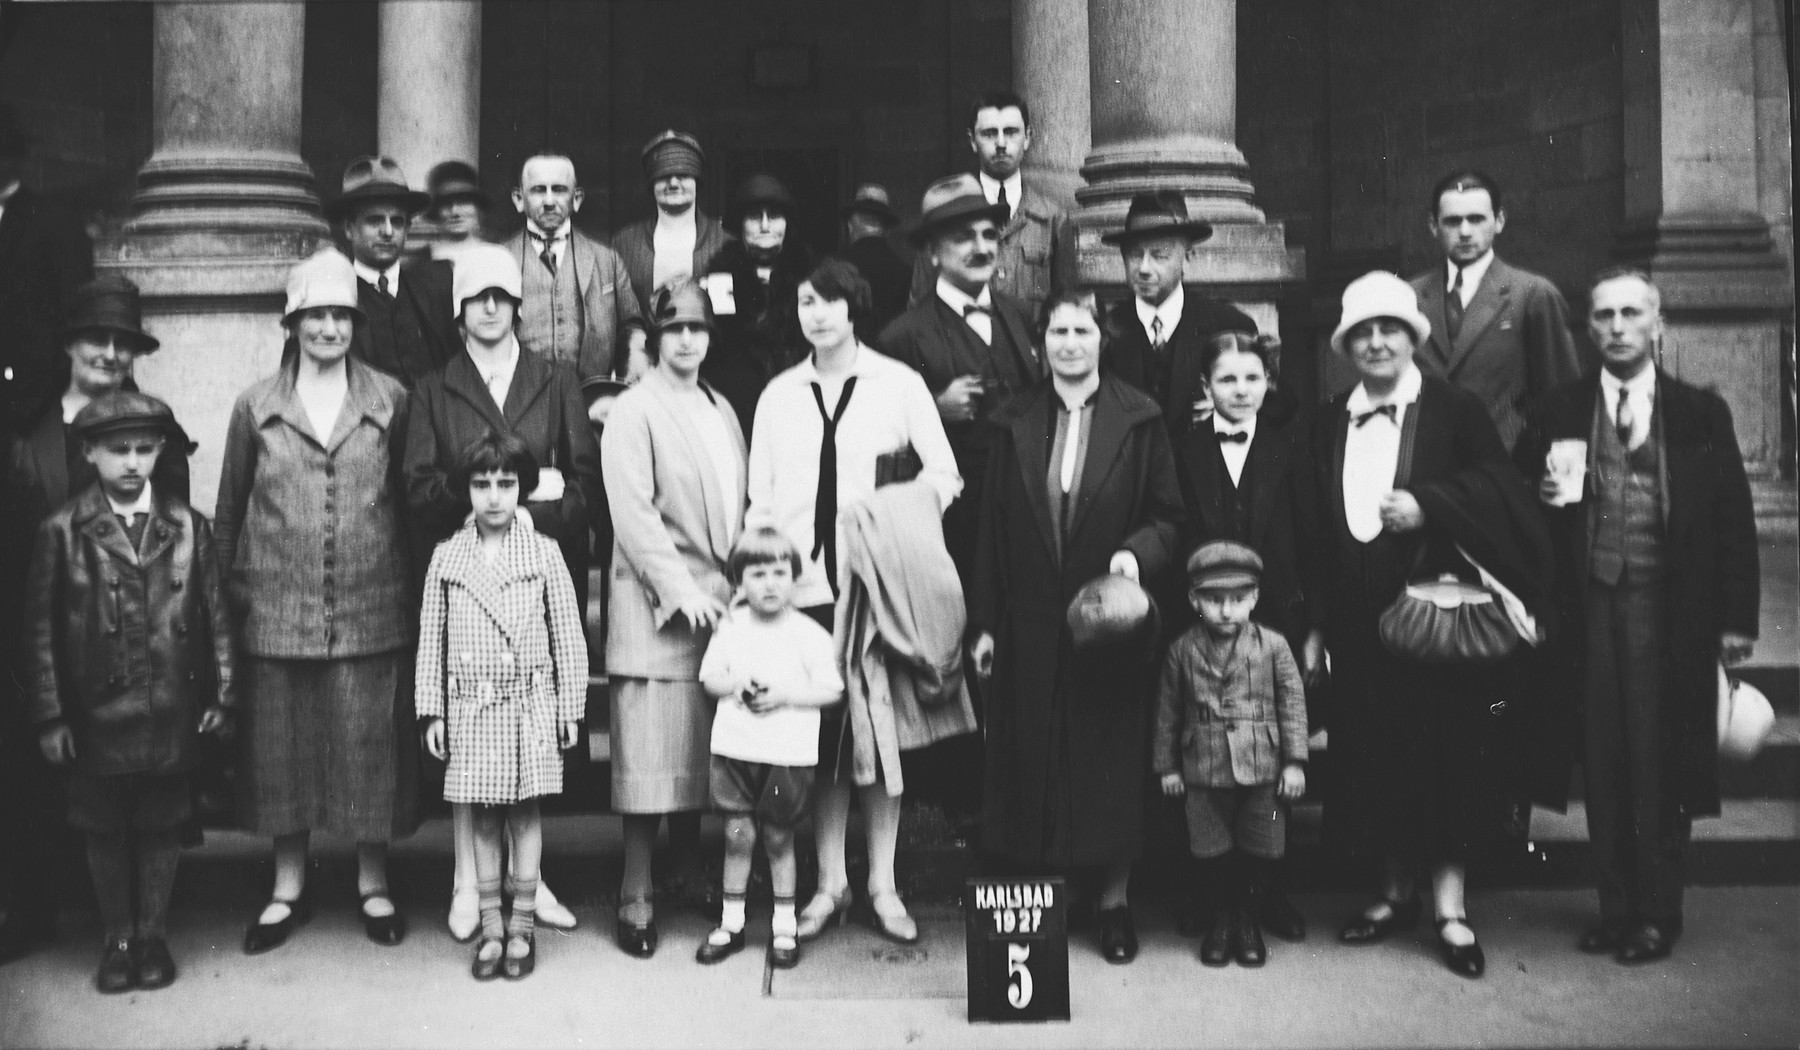 Group portrait of Czech Jews vacationing in the Karlsbad spa.  Pictured in the center are Elsa Krasa and her sister, Rosa Feldstein.  In front of them are their children Olga Feldstein and Edgar Krasa.